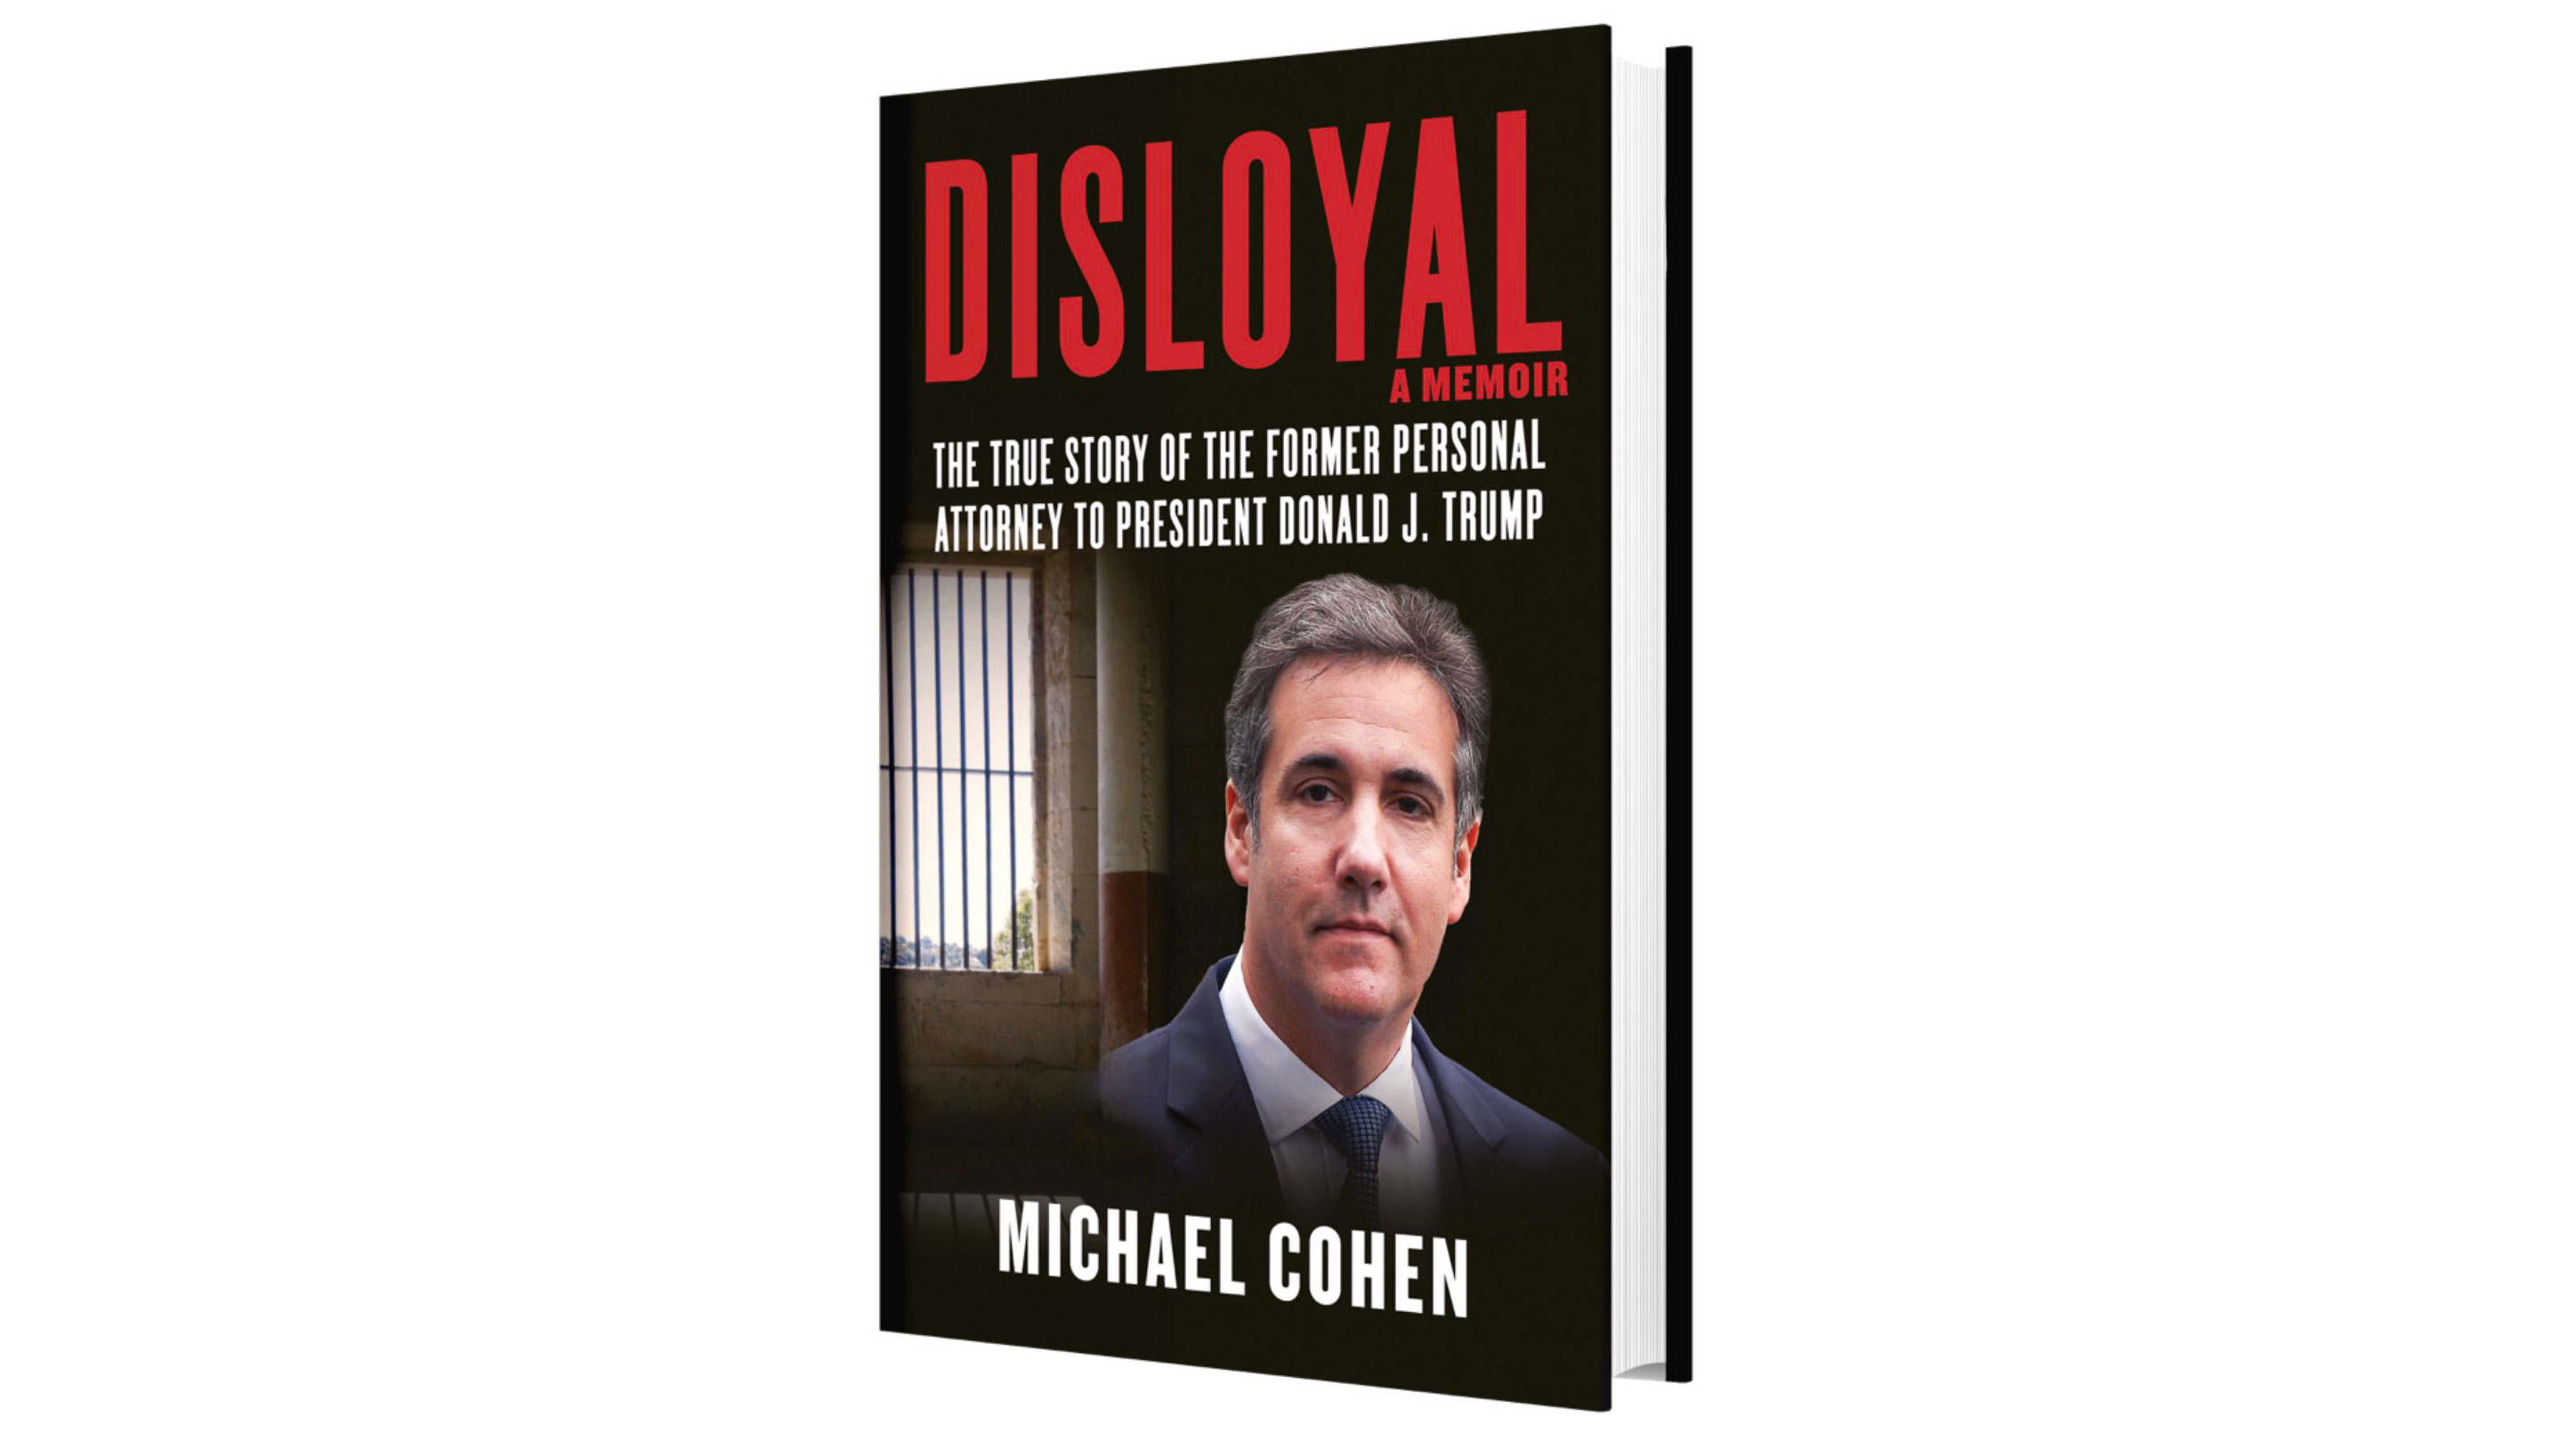 Michael Cohen teases upcoming book by releasing its cover